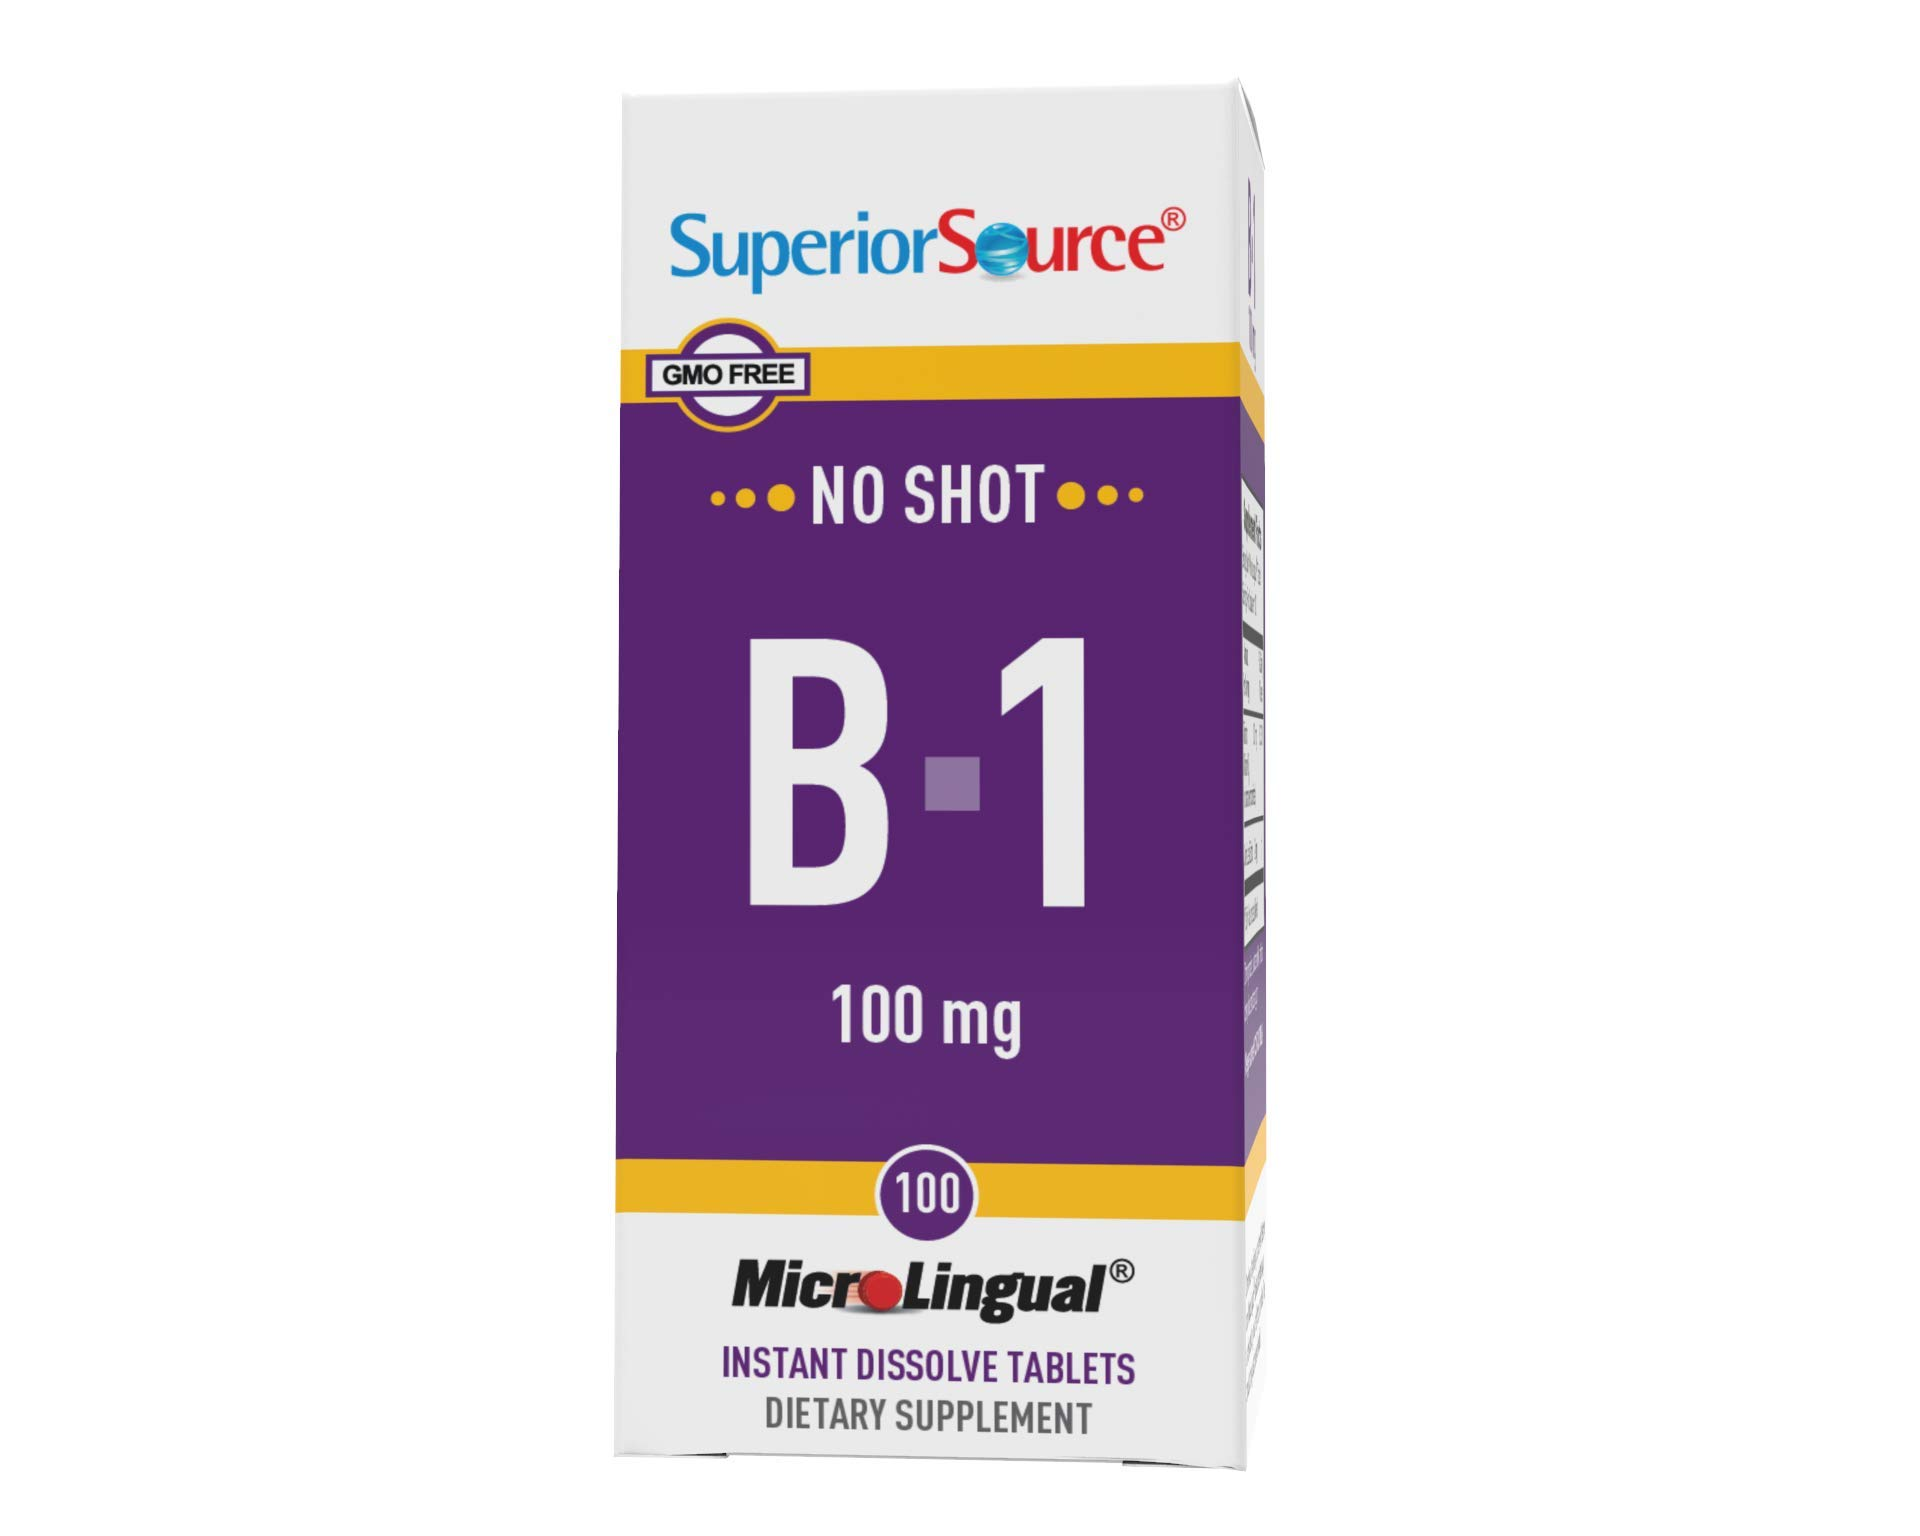 Superior Source Vitamin B1 (Thiamin), 100 mg, Under The Tongue Quick Dissolve Sublingual Tablets, 100 Count, Increased Metabolism and Energy Production, Nervous System Support, Non-GMO